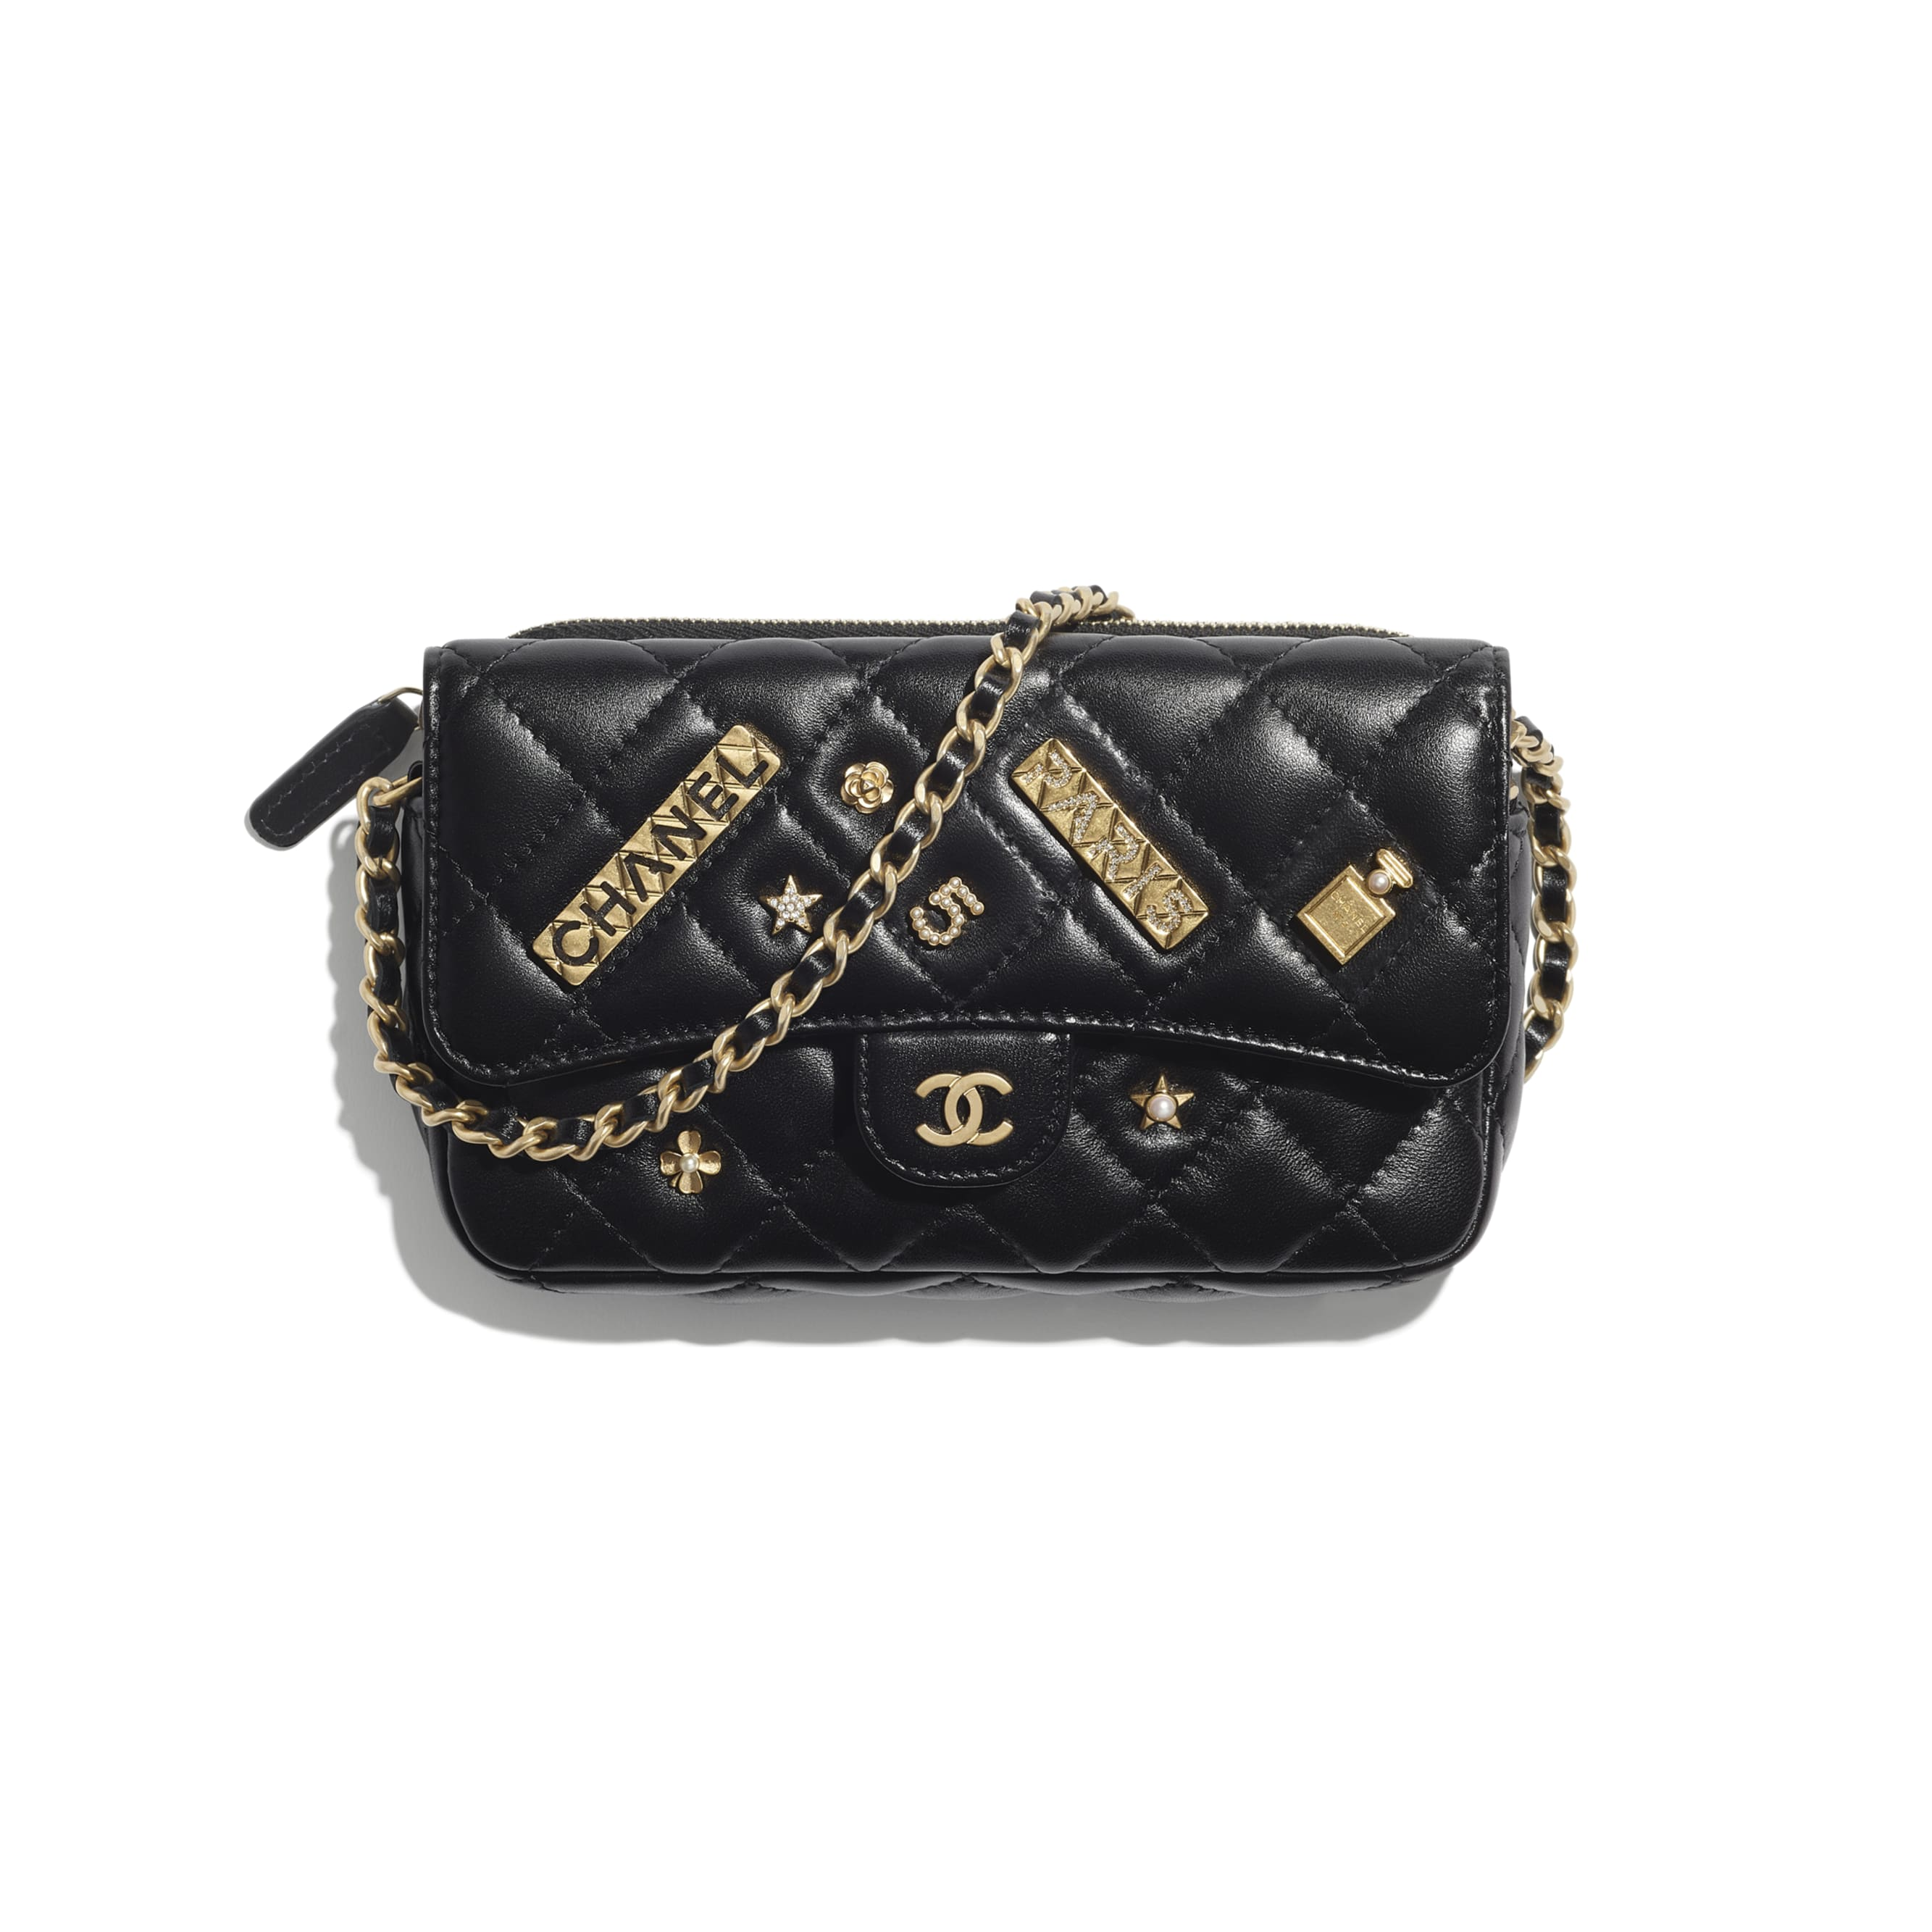 Classic Flap Phone Holder with Chain - Black - Lambskin - CHANEL - Default view - see standard sized version